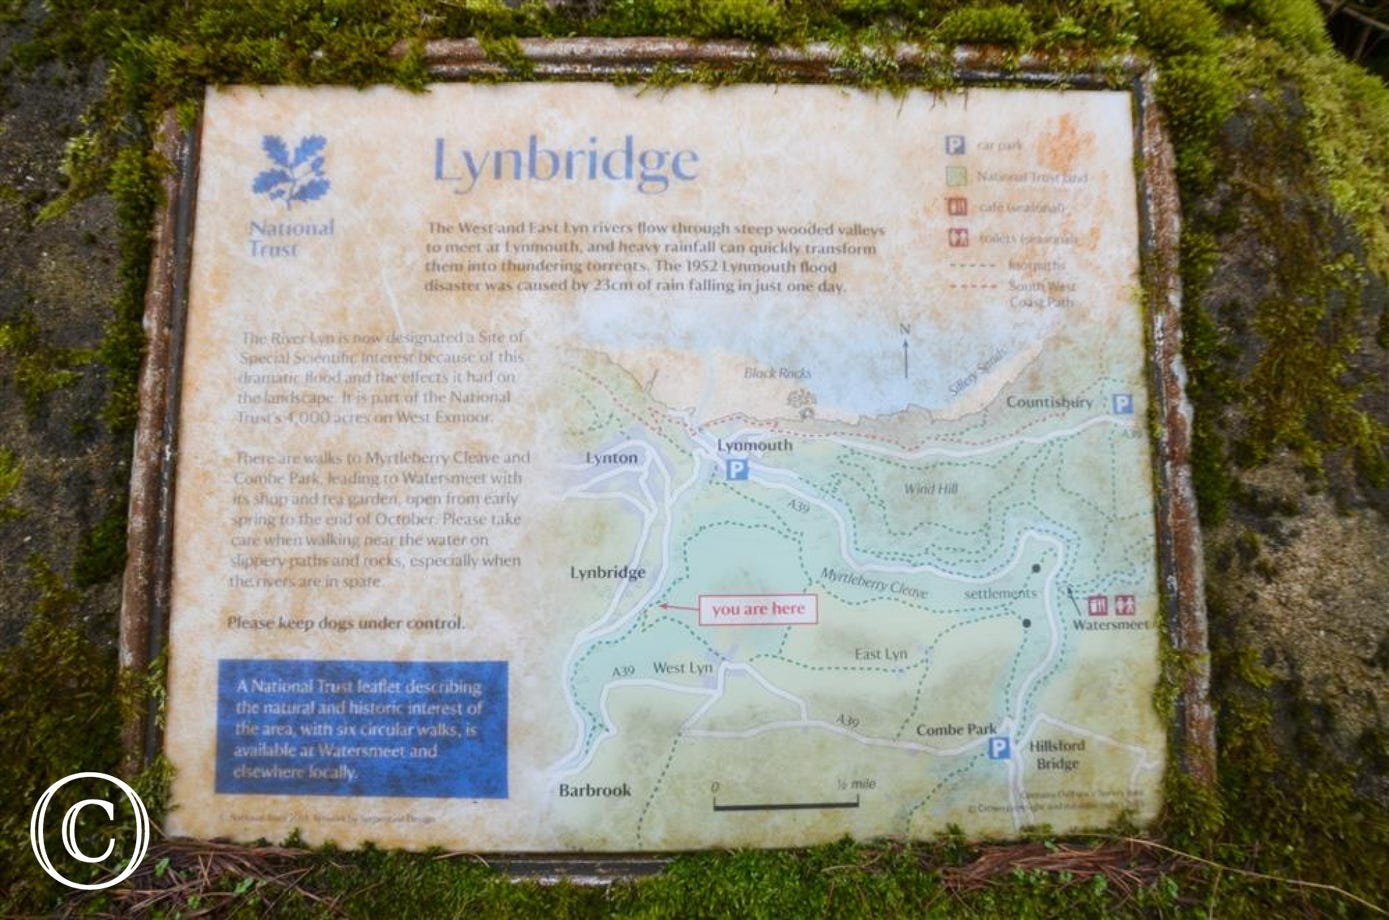 Lynbridge - View 2